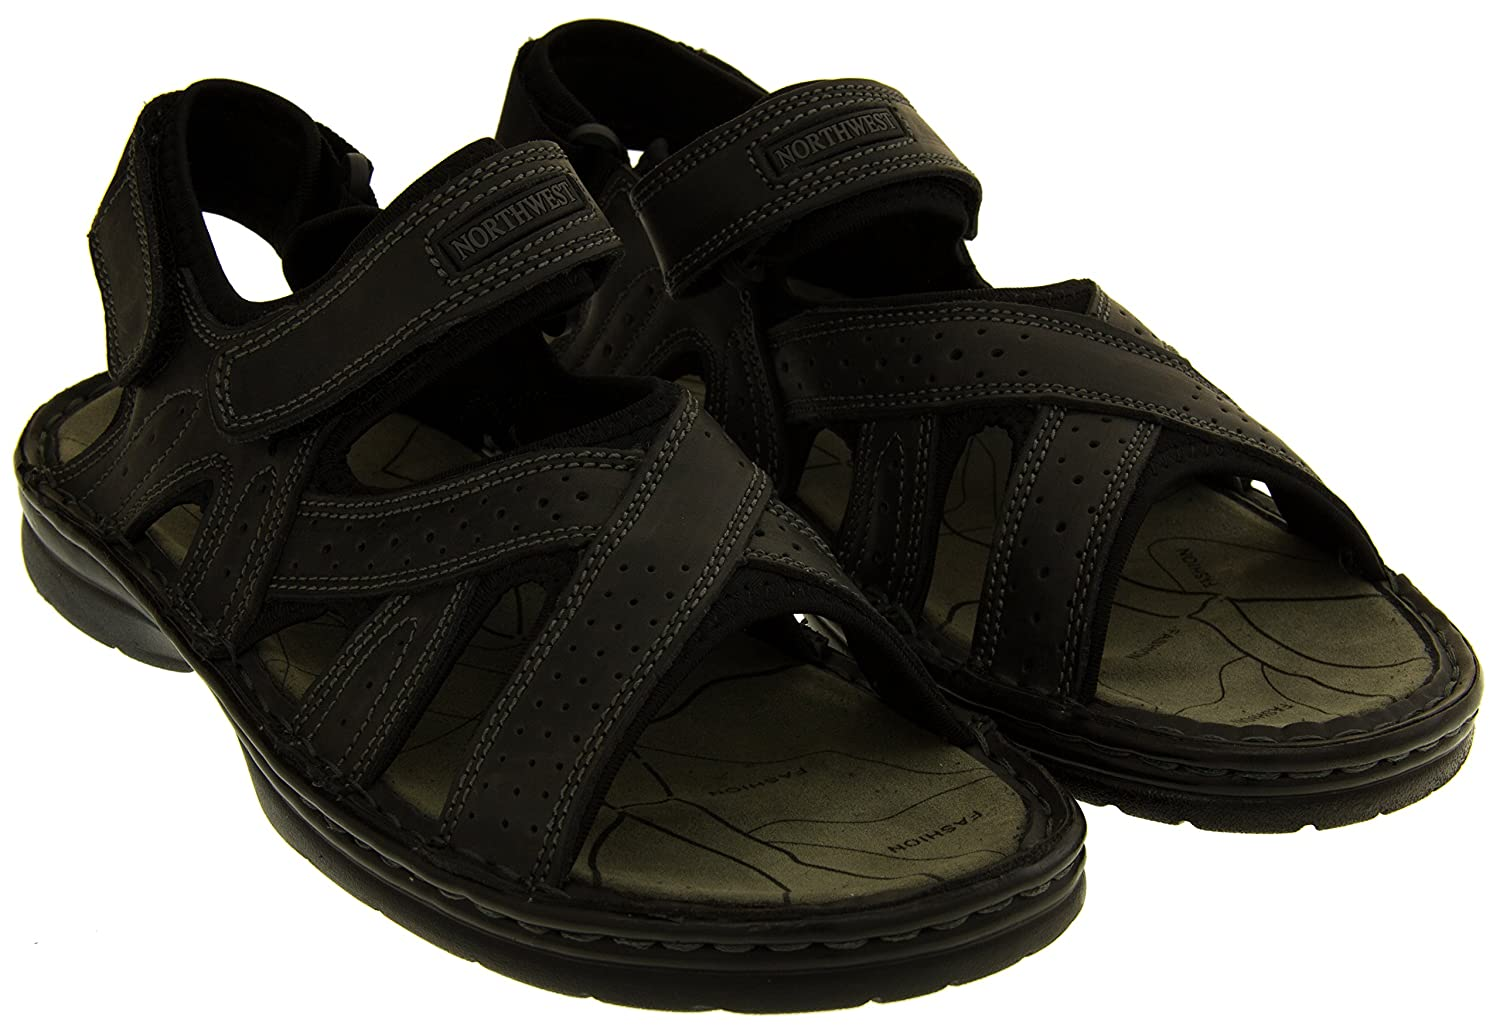 Footwear Studio Northwest Territory Mens Sudan Leather Touch Fastening Strap  Hiking Sandals: Amazon.co.uk: Shoes & Bags